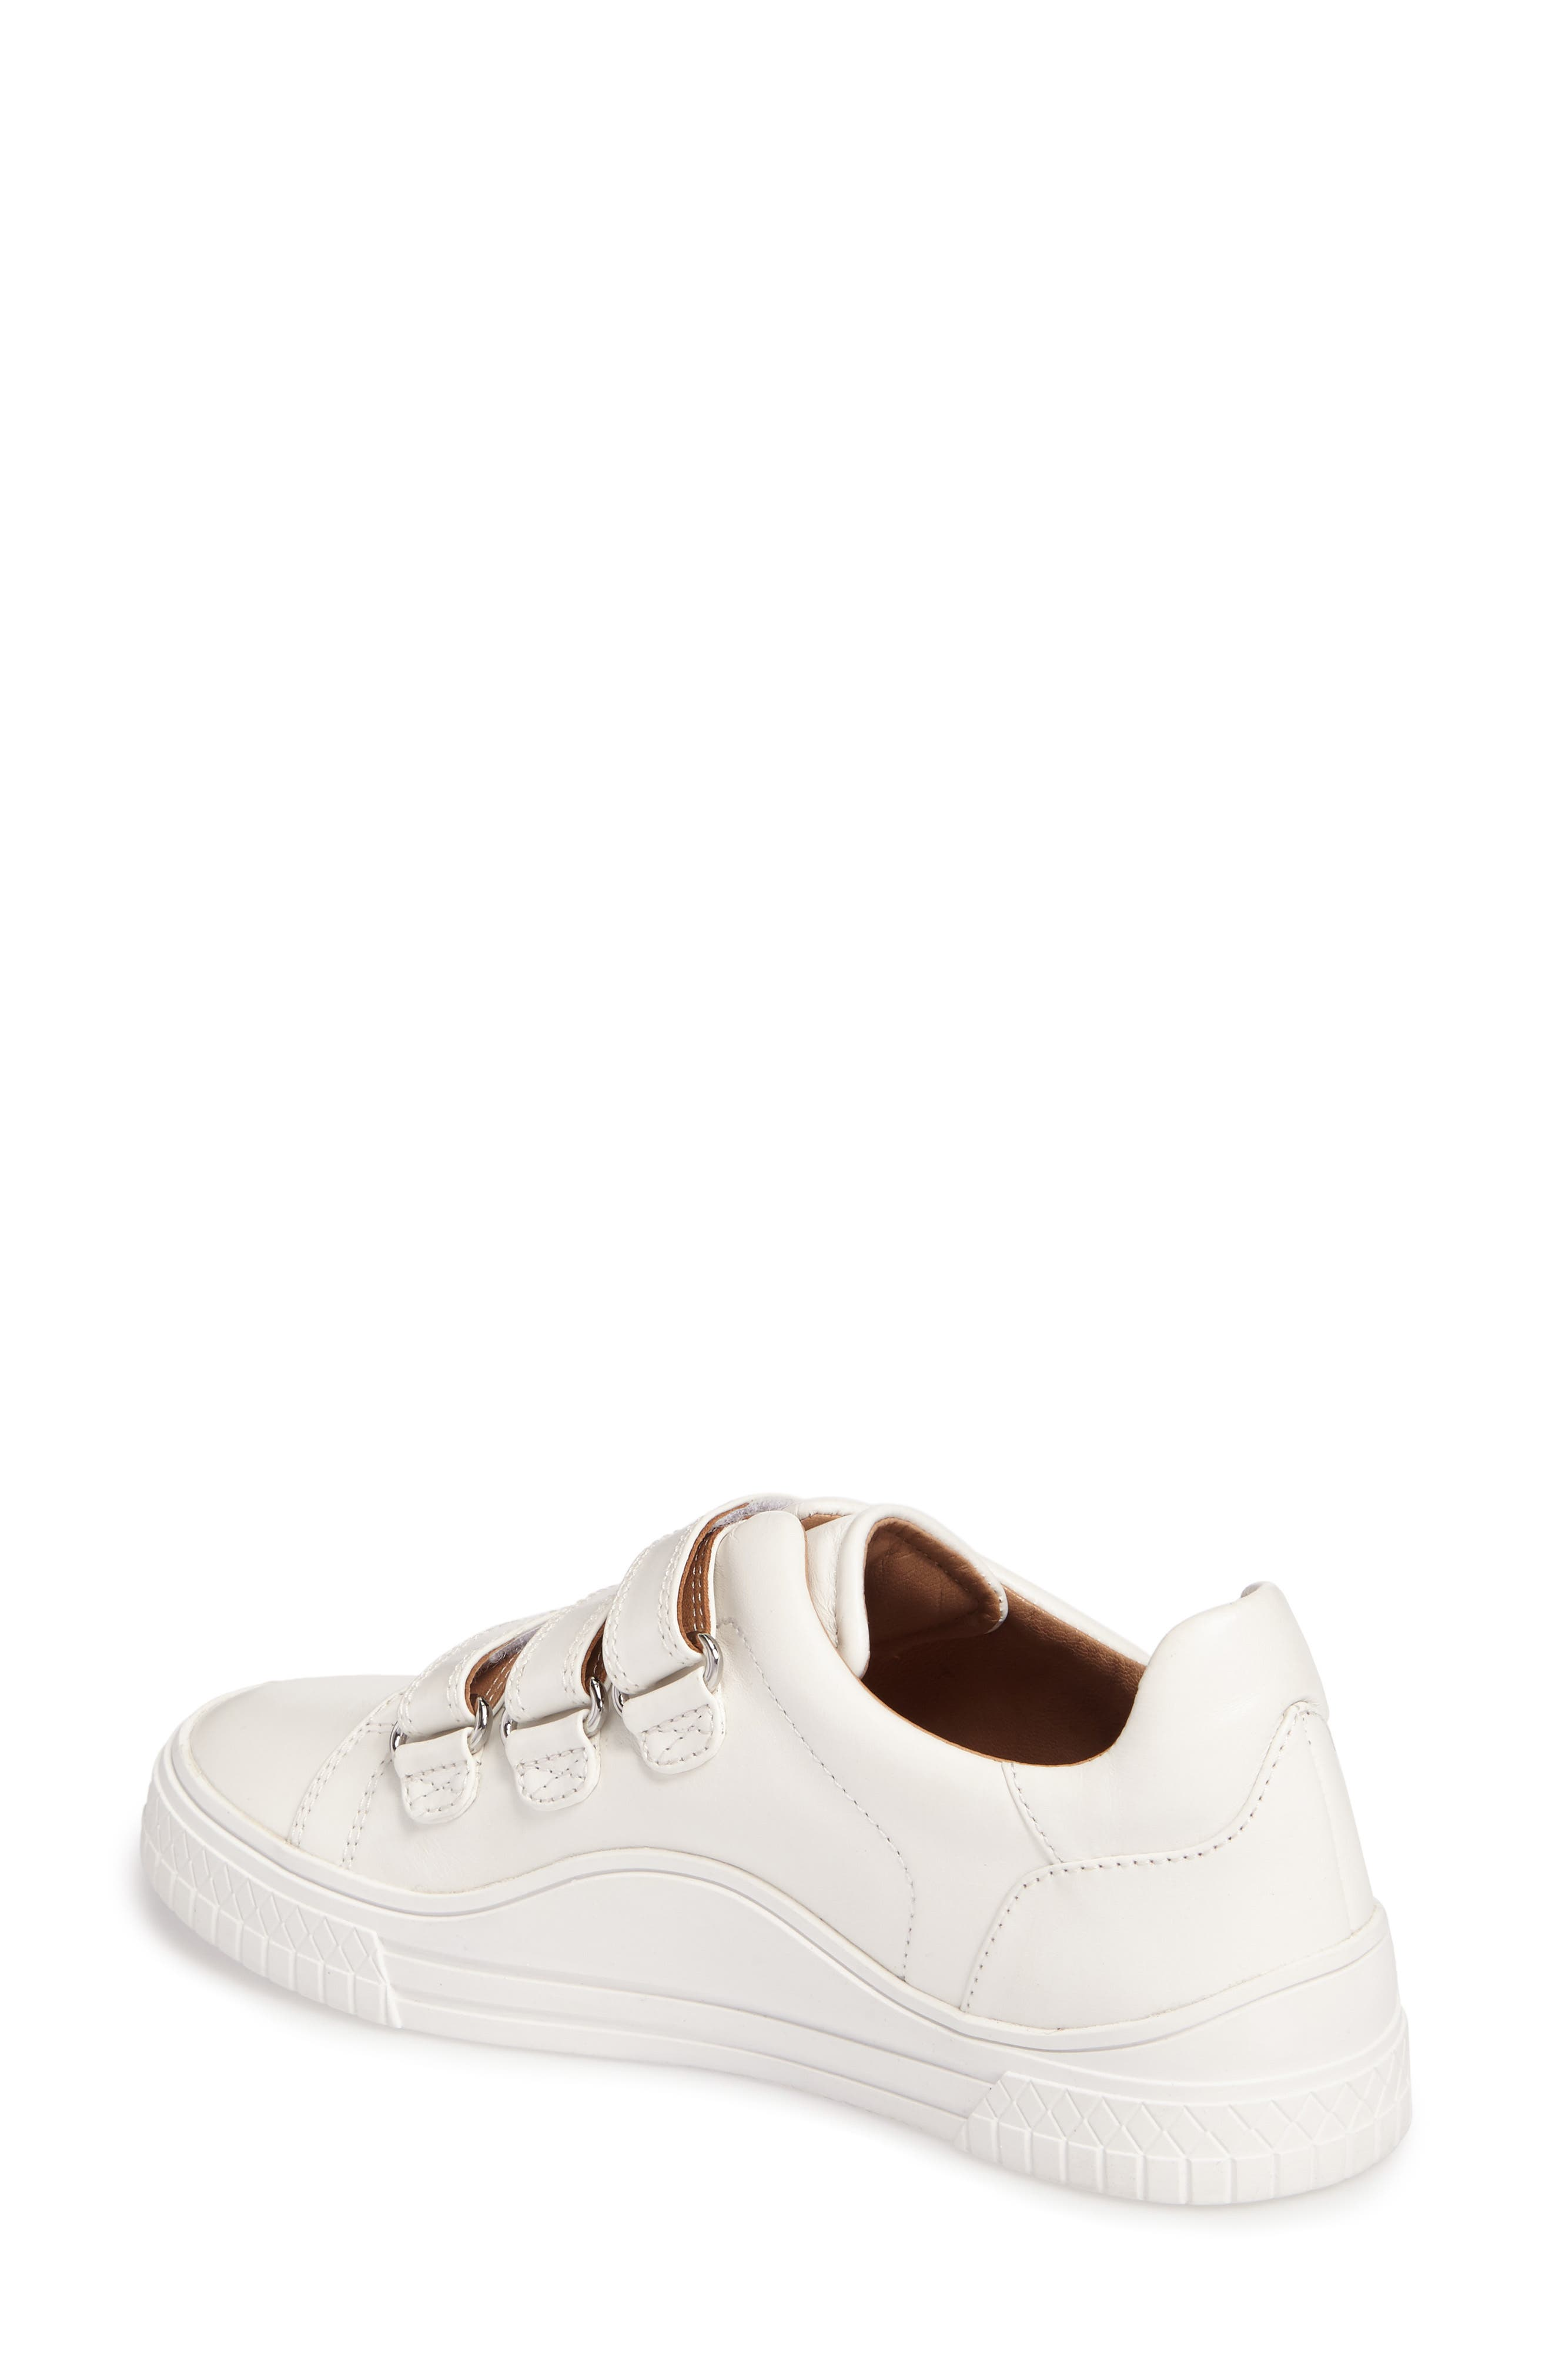 Grace Sneaker,                             Alternate thumbnail 2, color,                             White Leather